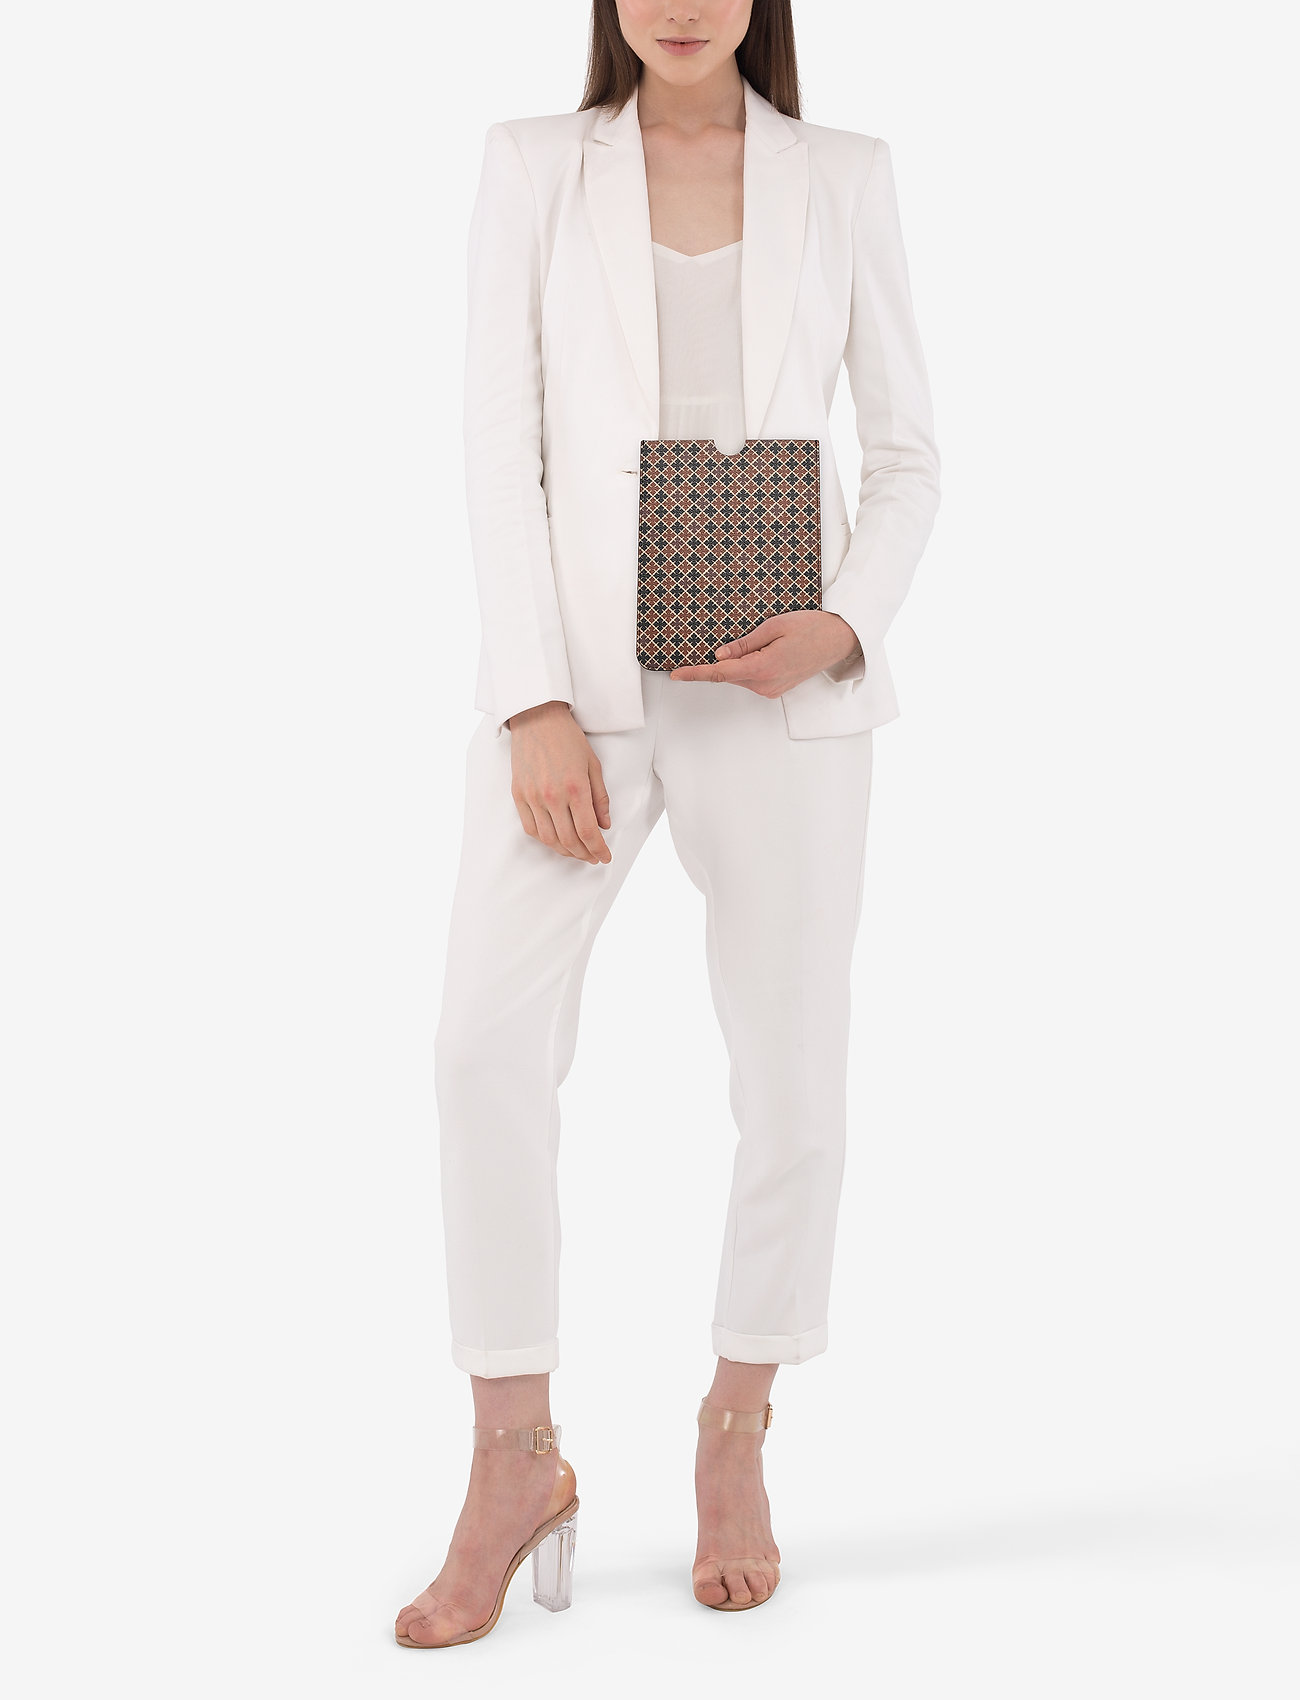 By Malene Birger PUR7002S91 - LEAFS